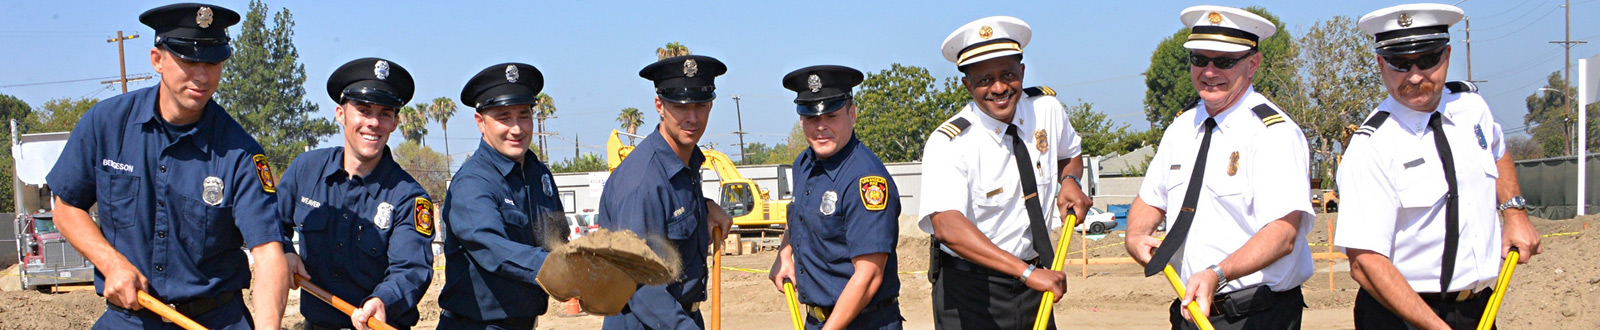 LAFD members break ground at a ceremonial event